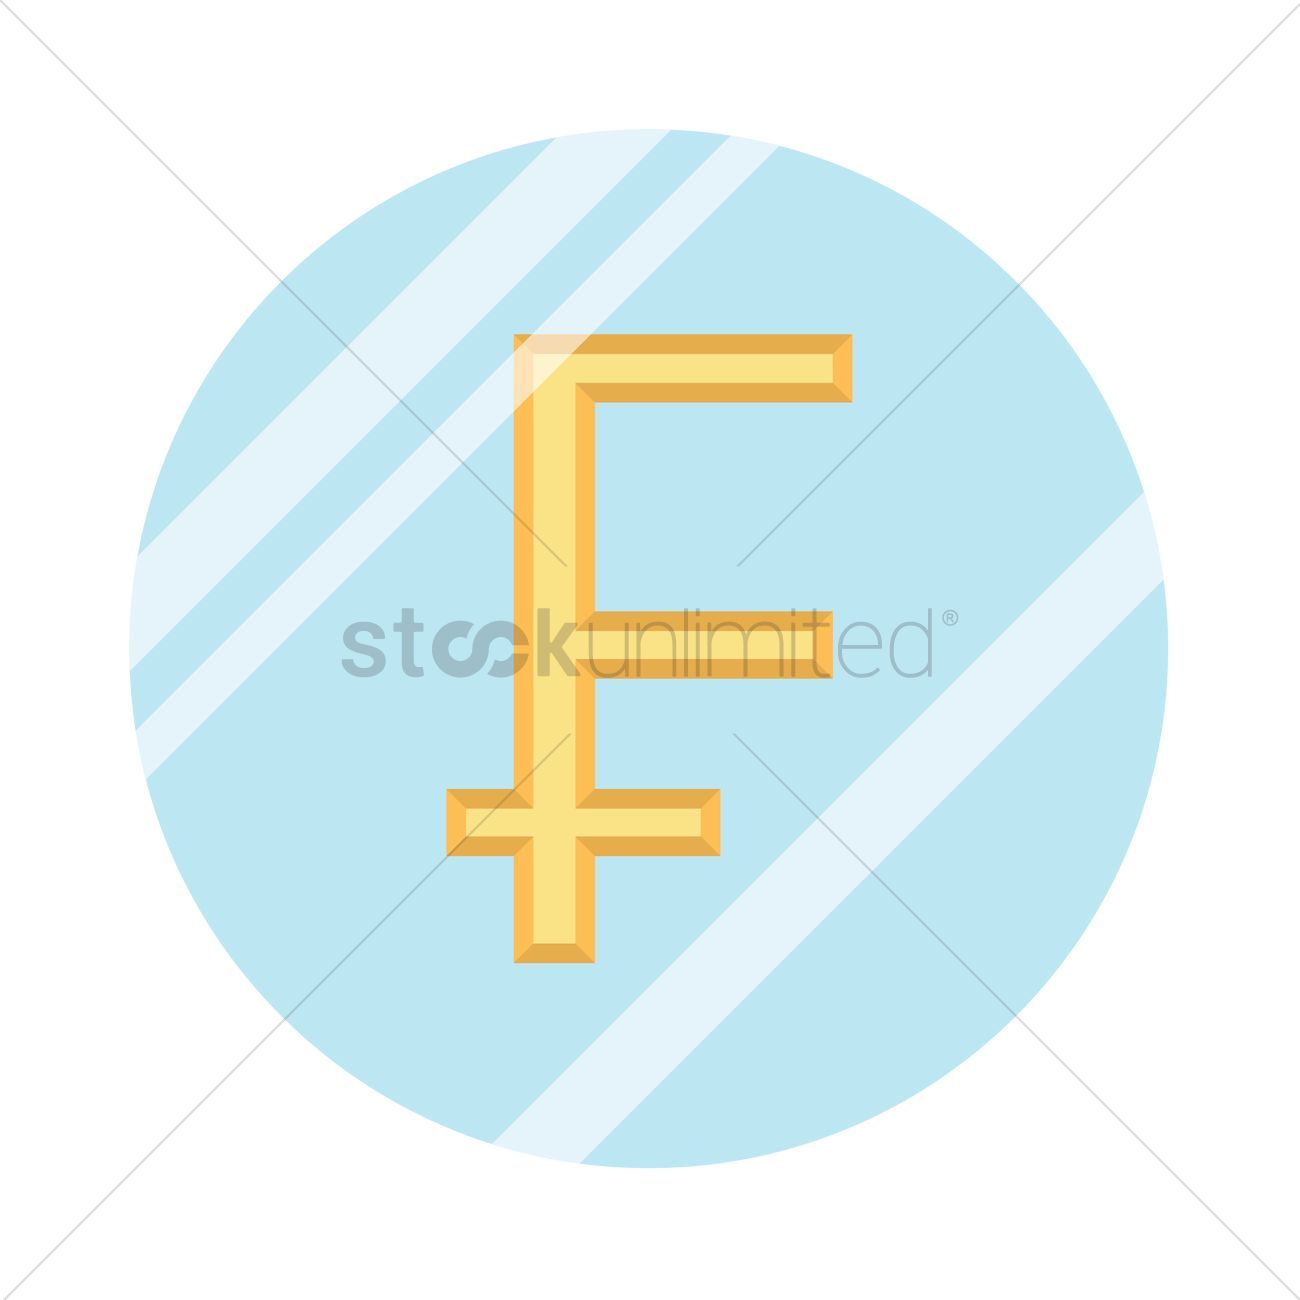 Switzerland franc currency vector image 2019111 stockunlimited switzerland franc currency vector graphic buycottarizona Images